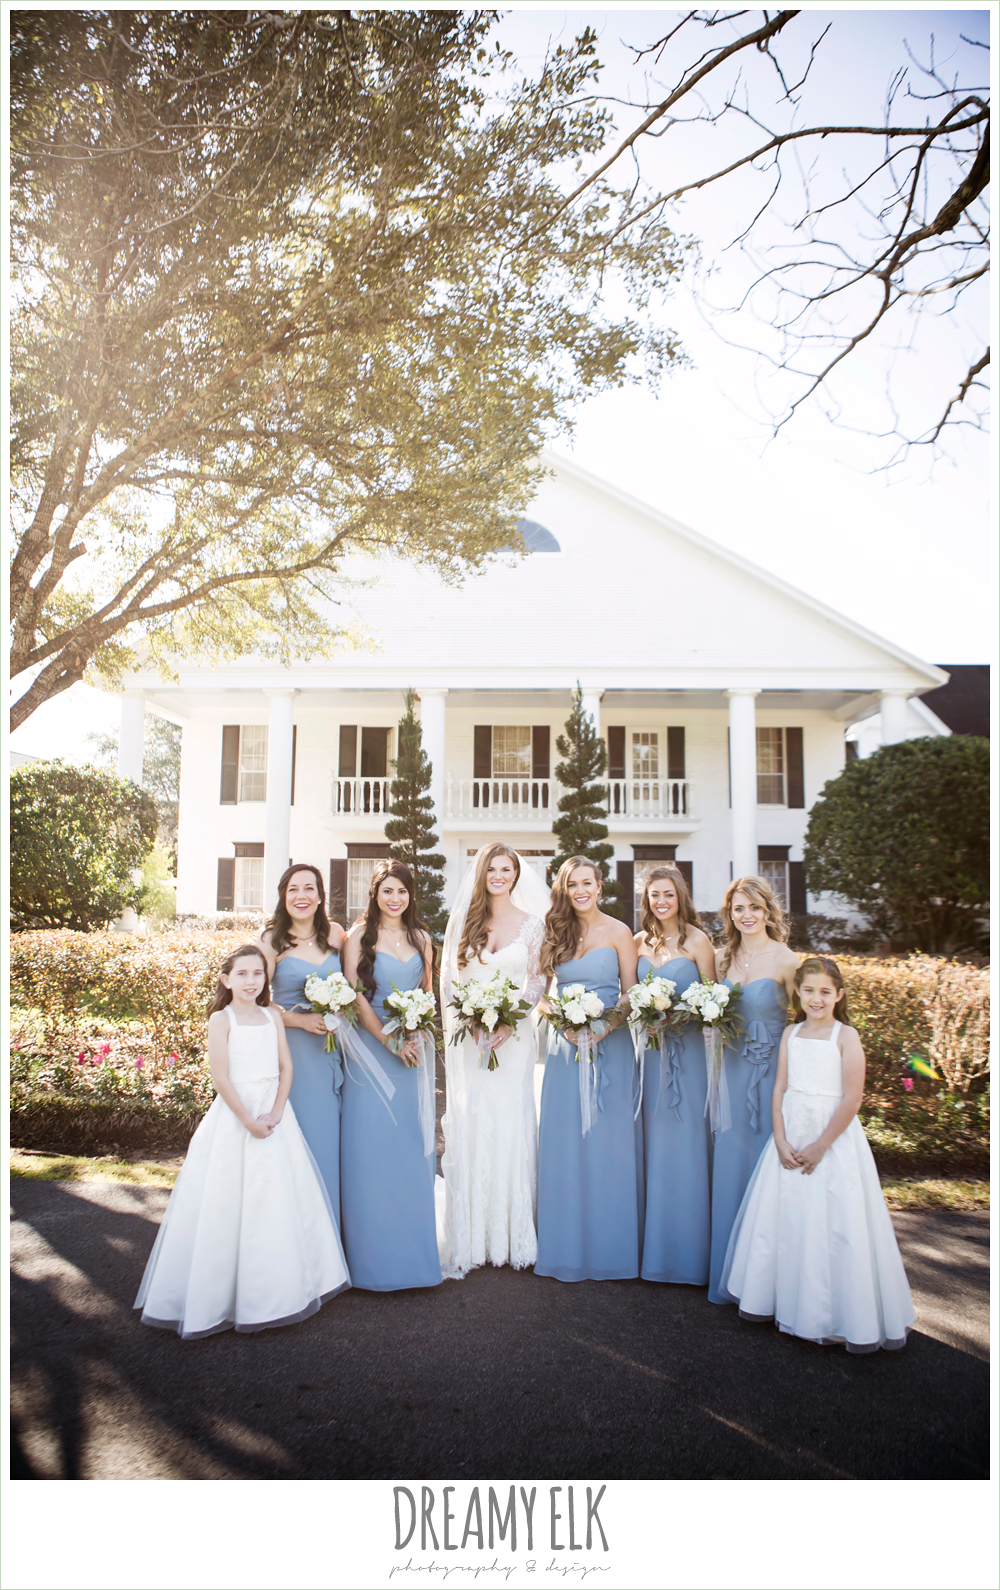 bride and bridesmaids, flower girls, long alfred angelo bridesmaids dress, wedgewood blue, long sleeve lace wedding dress, long lace veil, white wedding bouquet, tricia barksdale designs, white house, morning winter january wedding, ashelynn manor {dreamy elk photography and design}